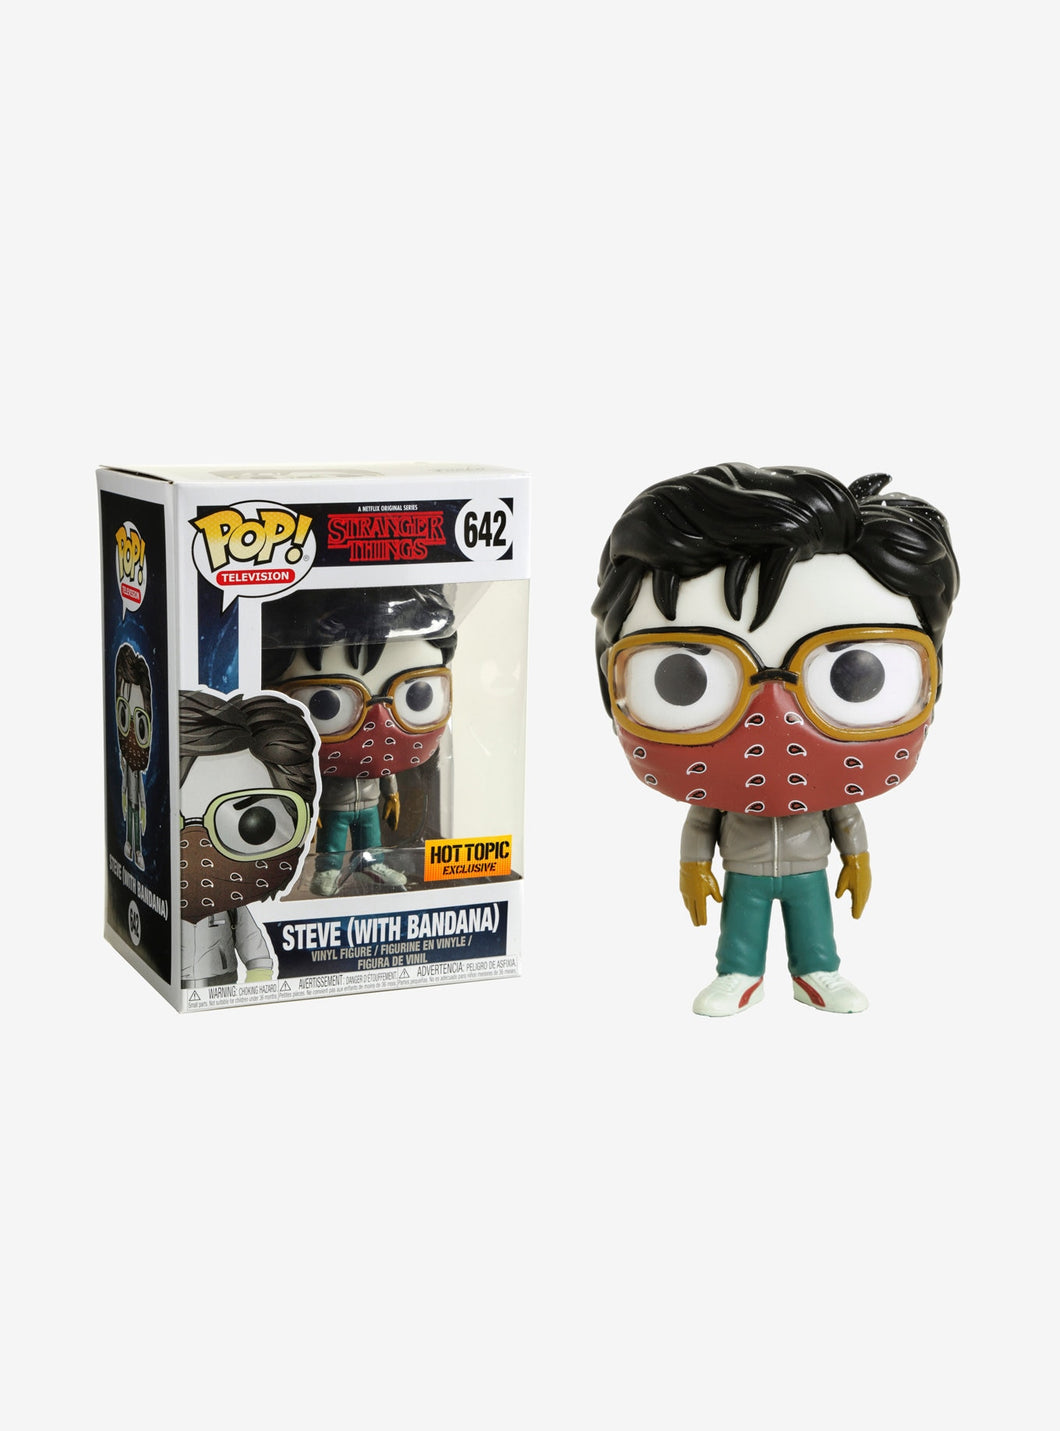 Stranger Things: Steve with Bandana - Hot Topic Exclusive